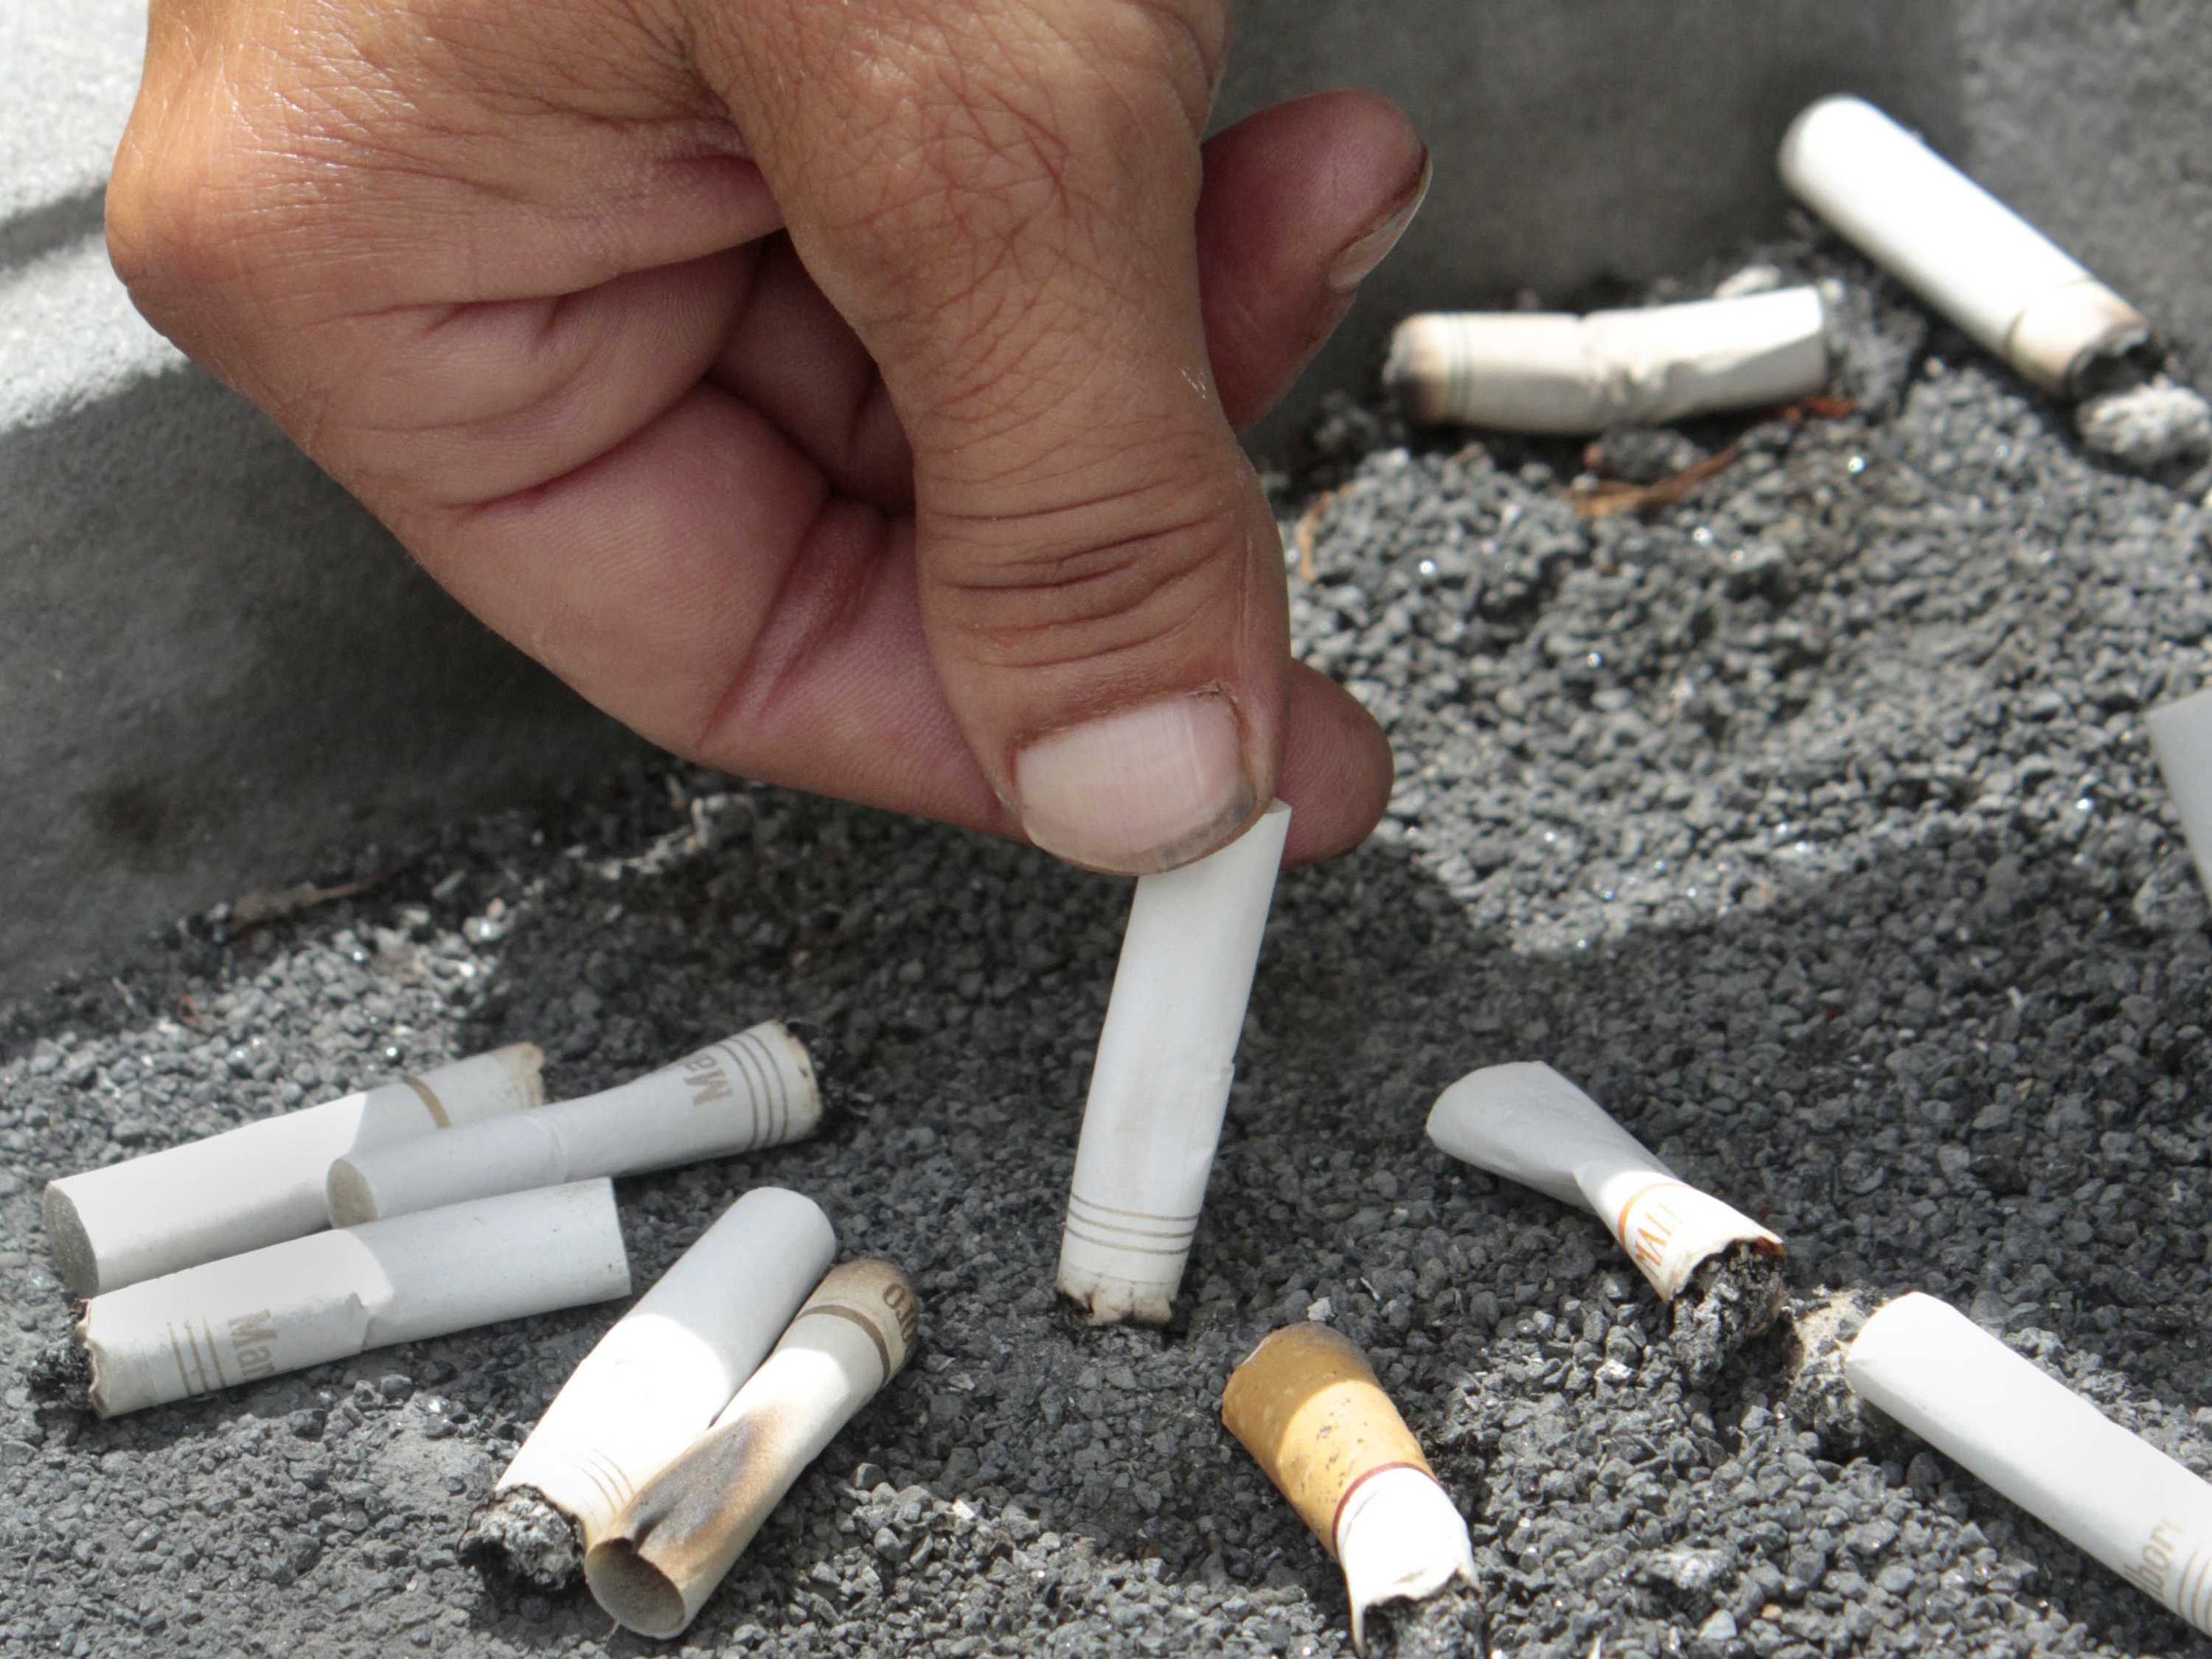 Study: Smokers Better Off Quitting, Even with Weight Gain